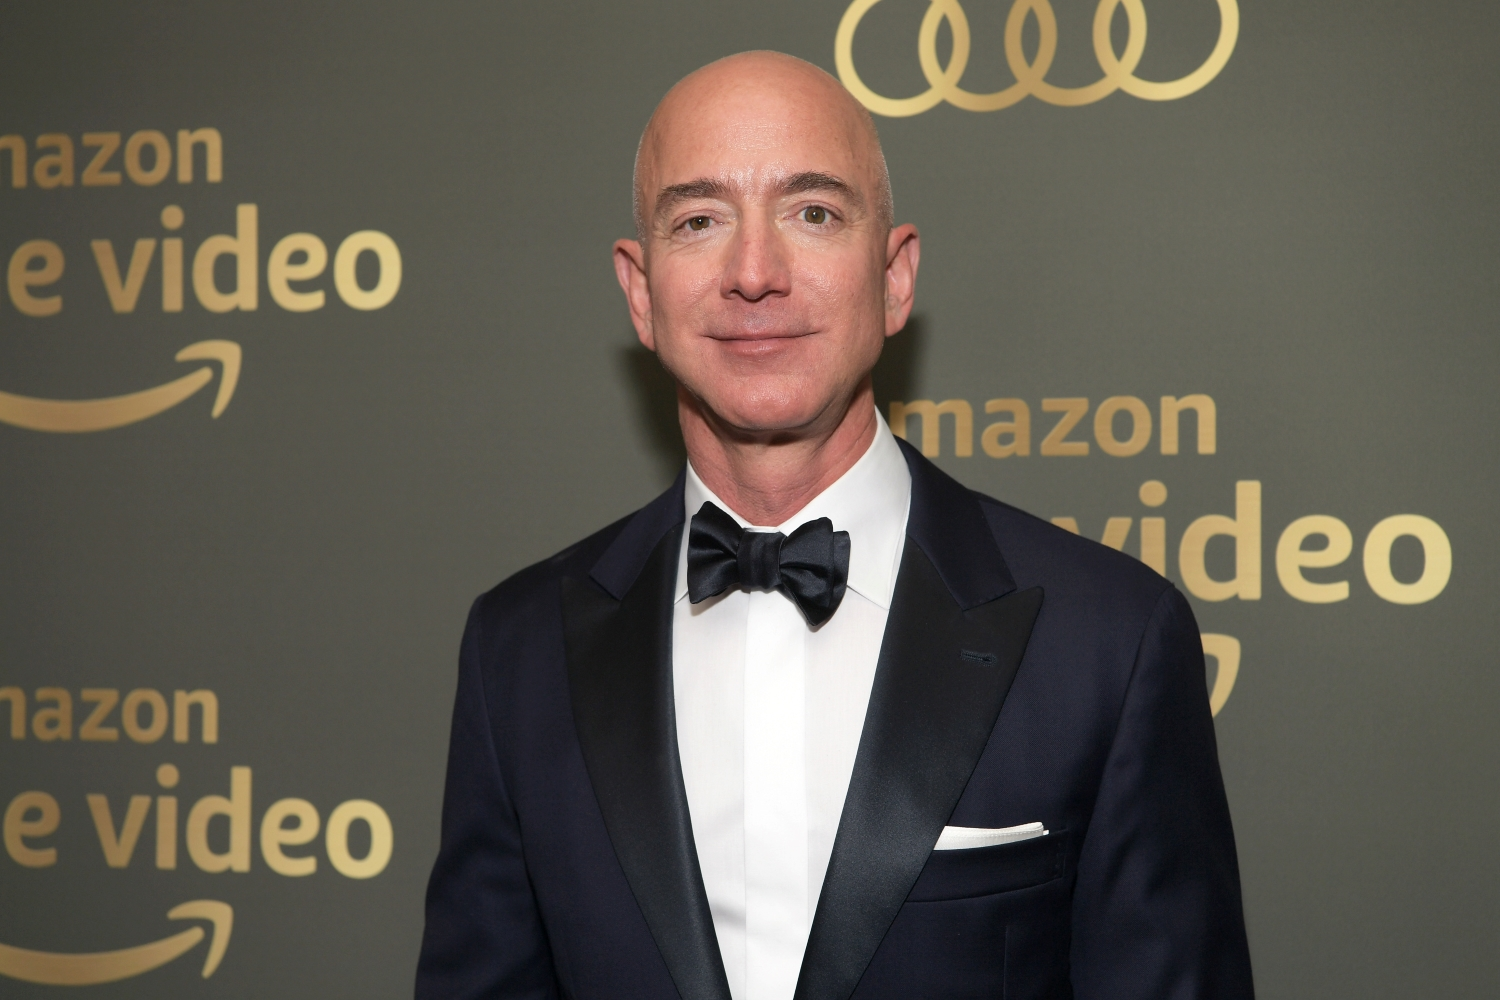 Amazon CEO Jeff Bezos attends the Amazon Prime Video's Golden Globe Awards After Party at The Beverly Hilton Hotel.